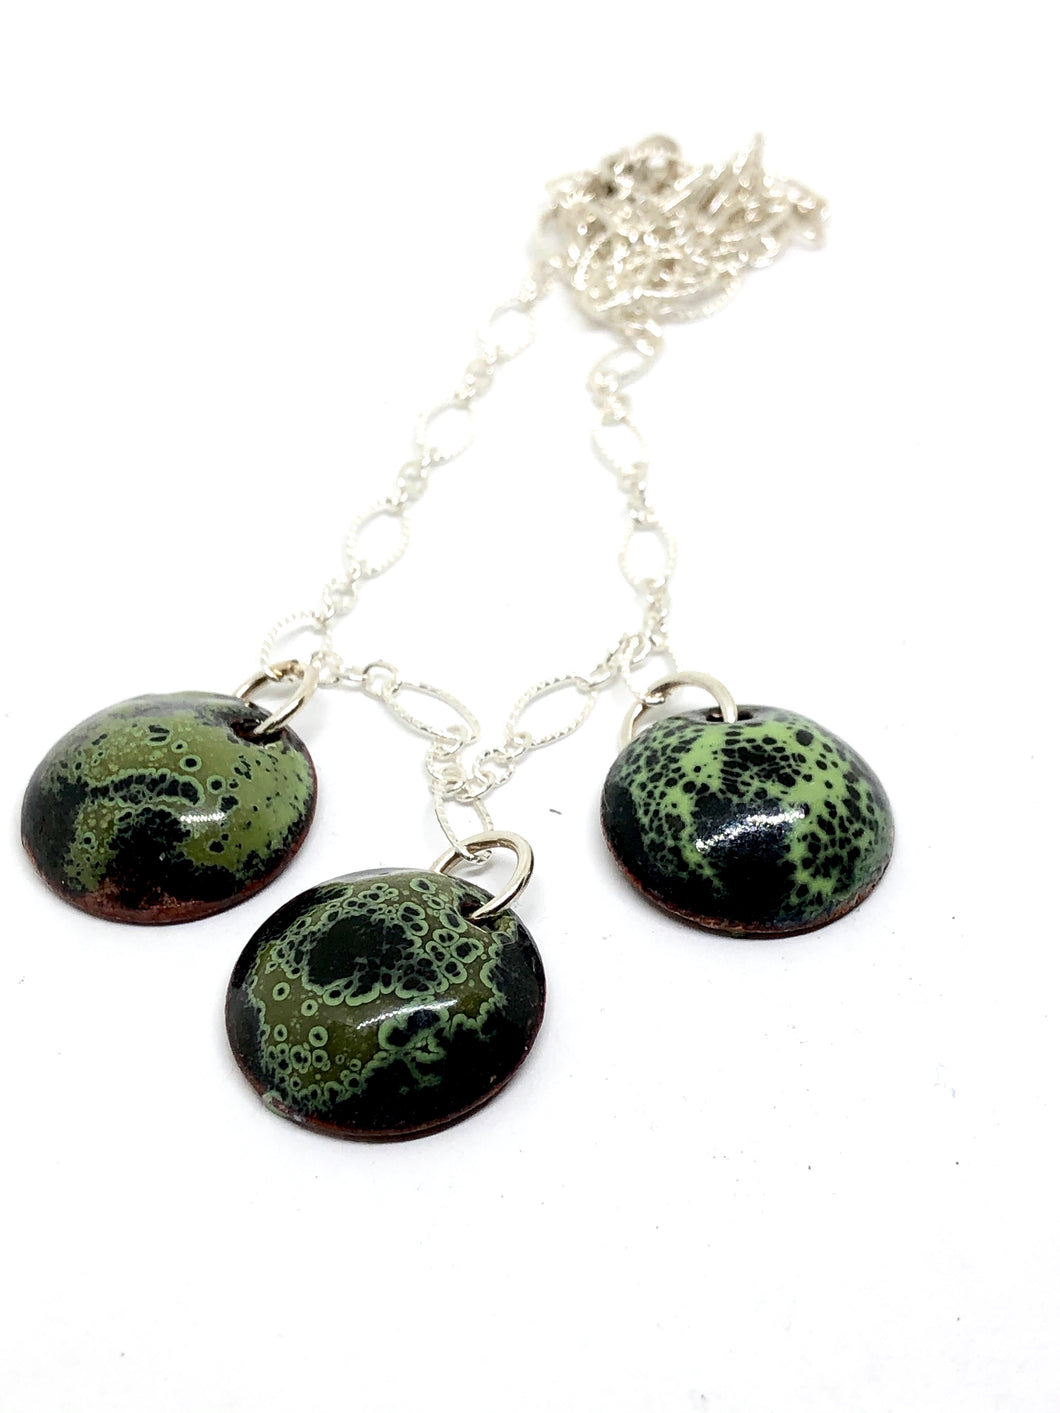 Mossy Crackle with Black Penny Necklace